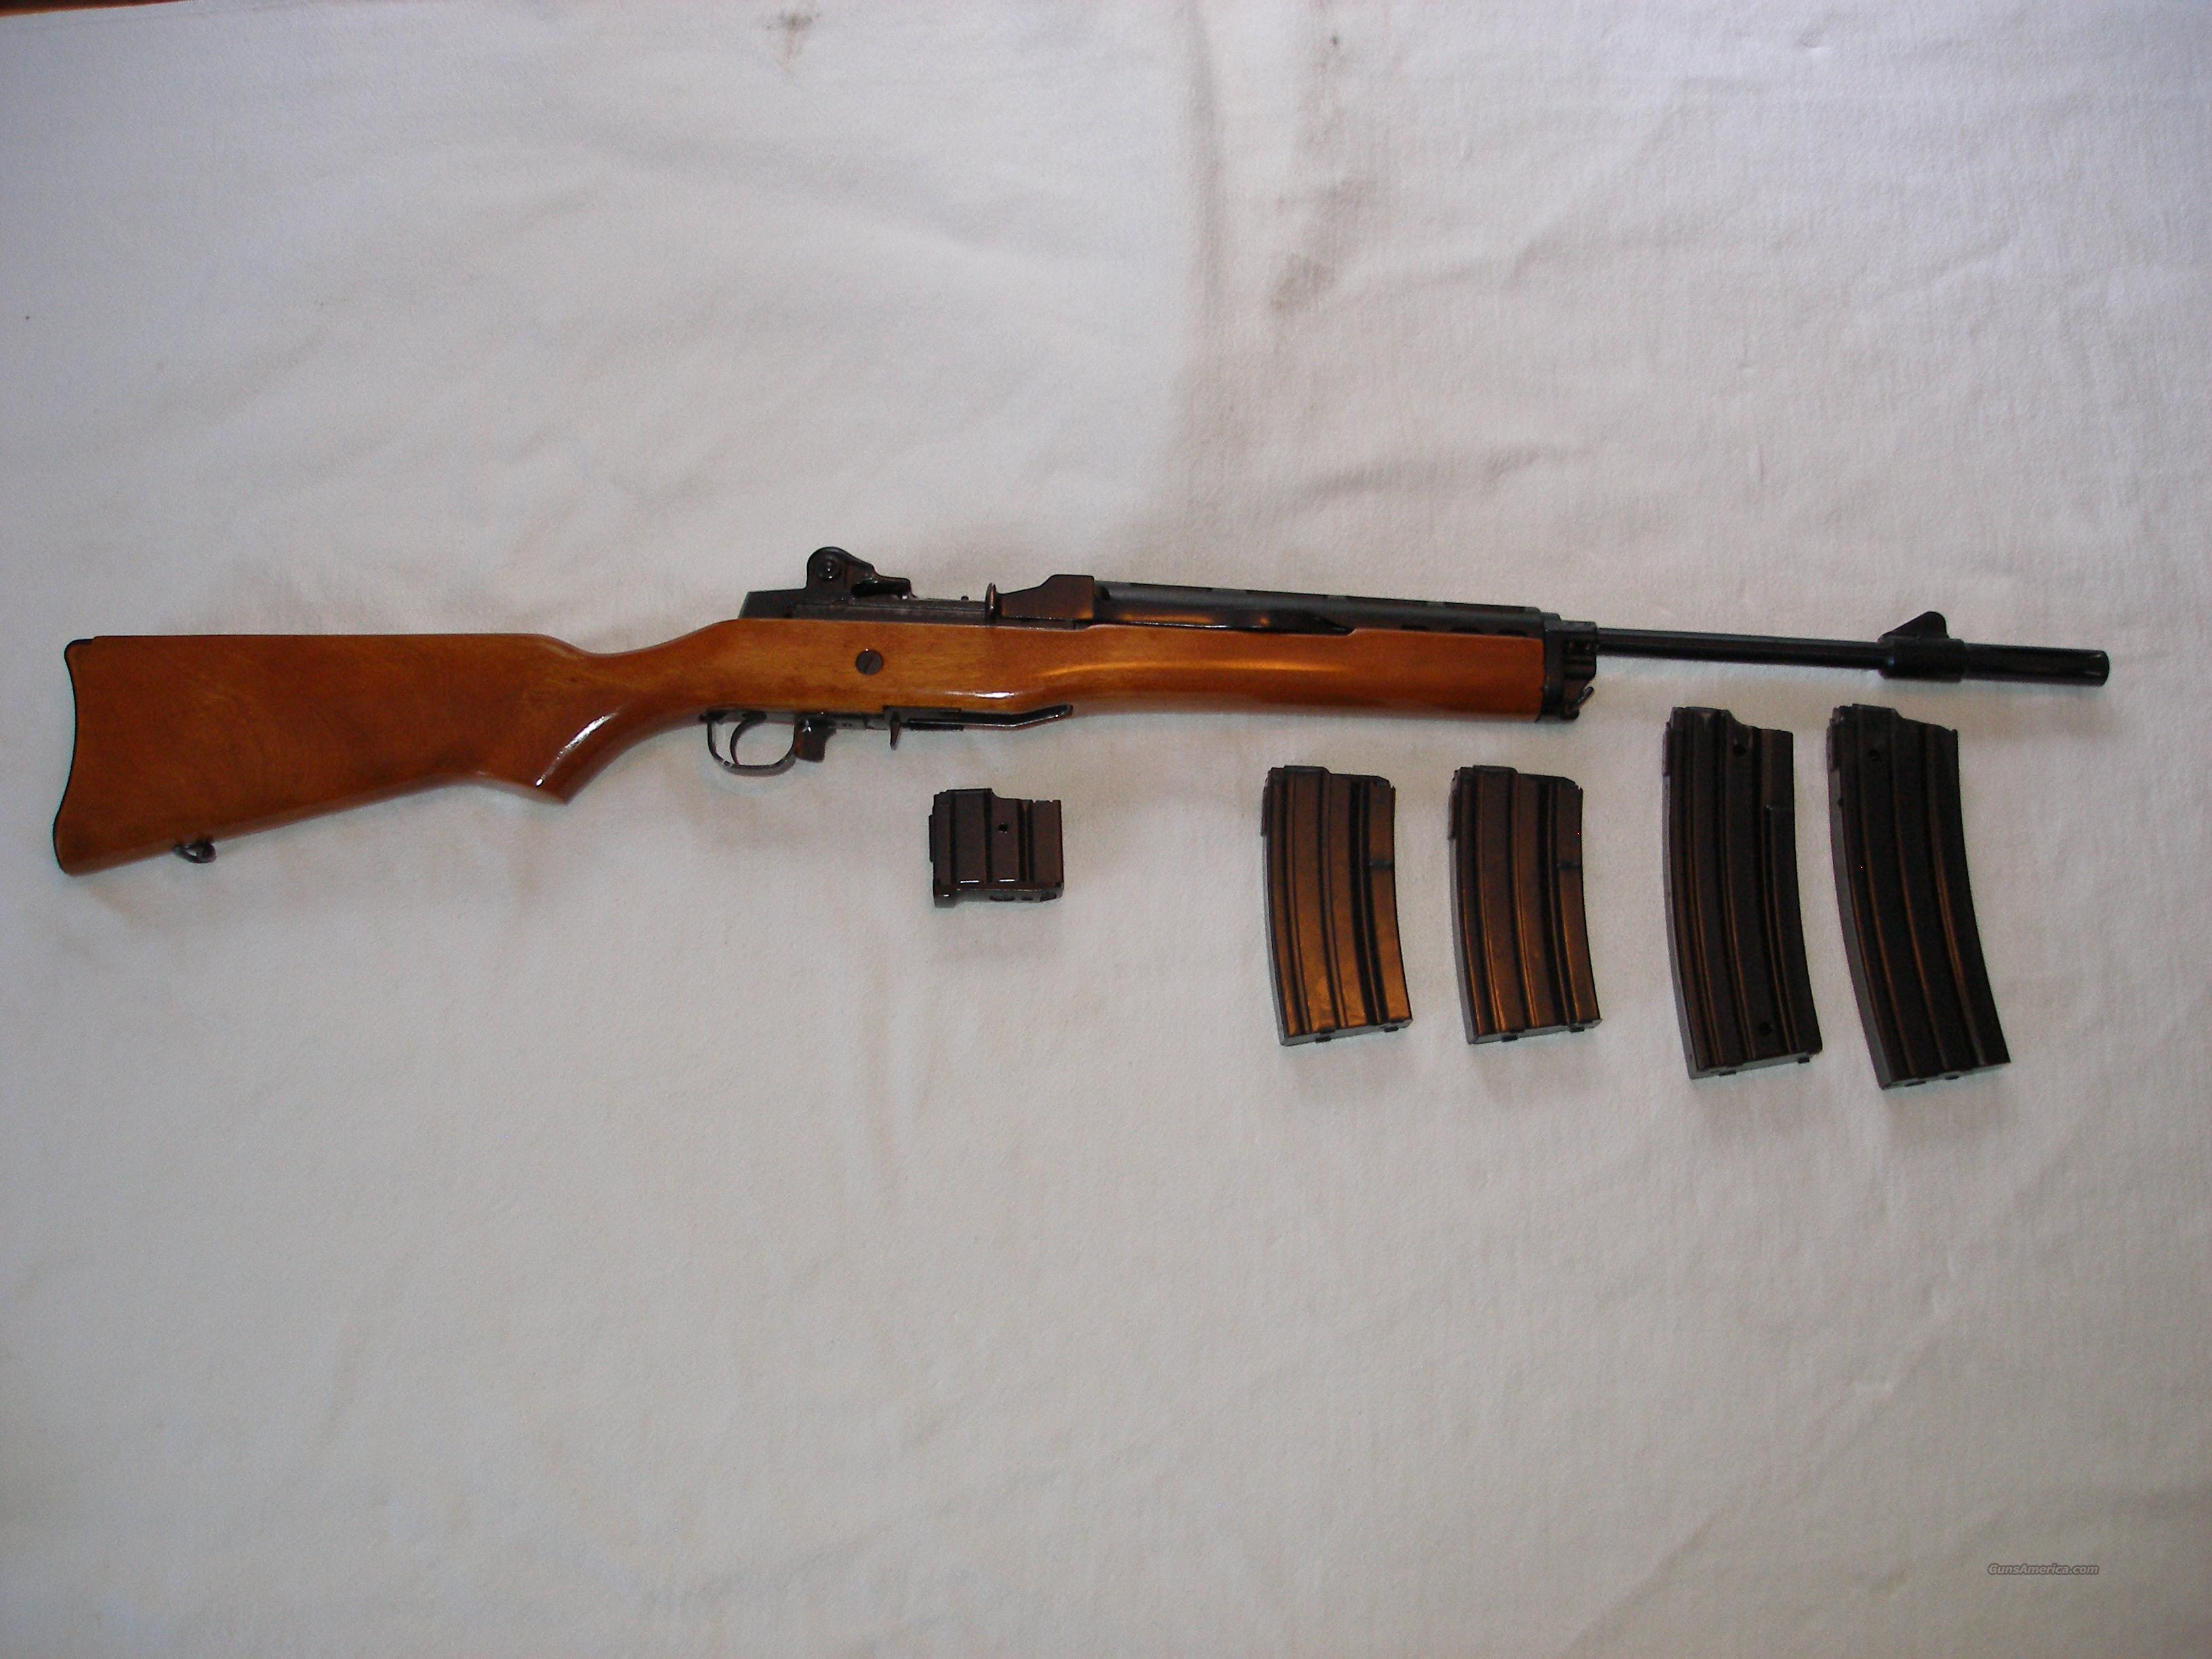 Ruger Mini 14 181 series  Guns > Rifles > Ruger Rifles > Mini-14 Type